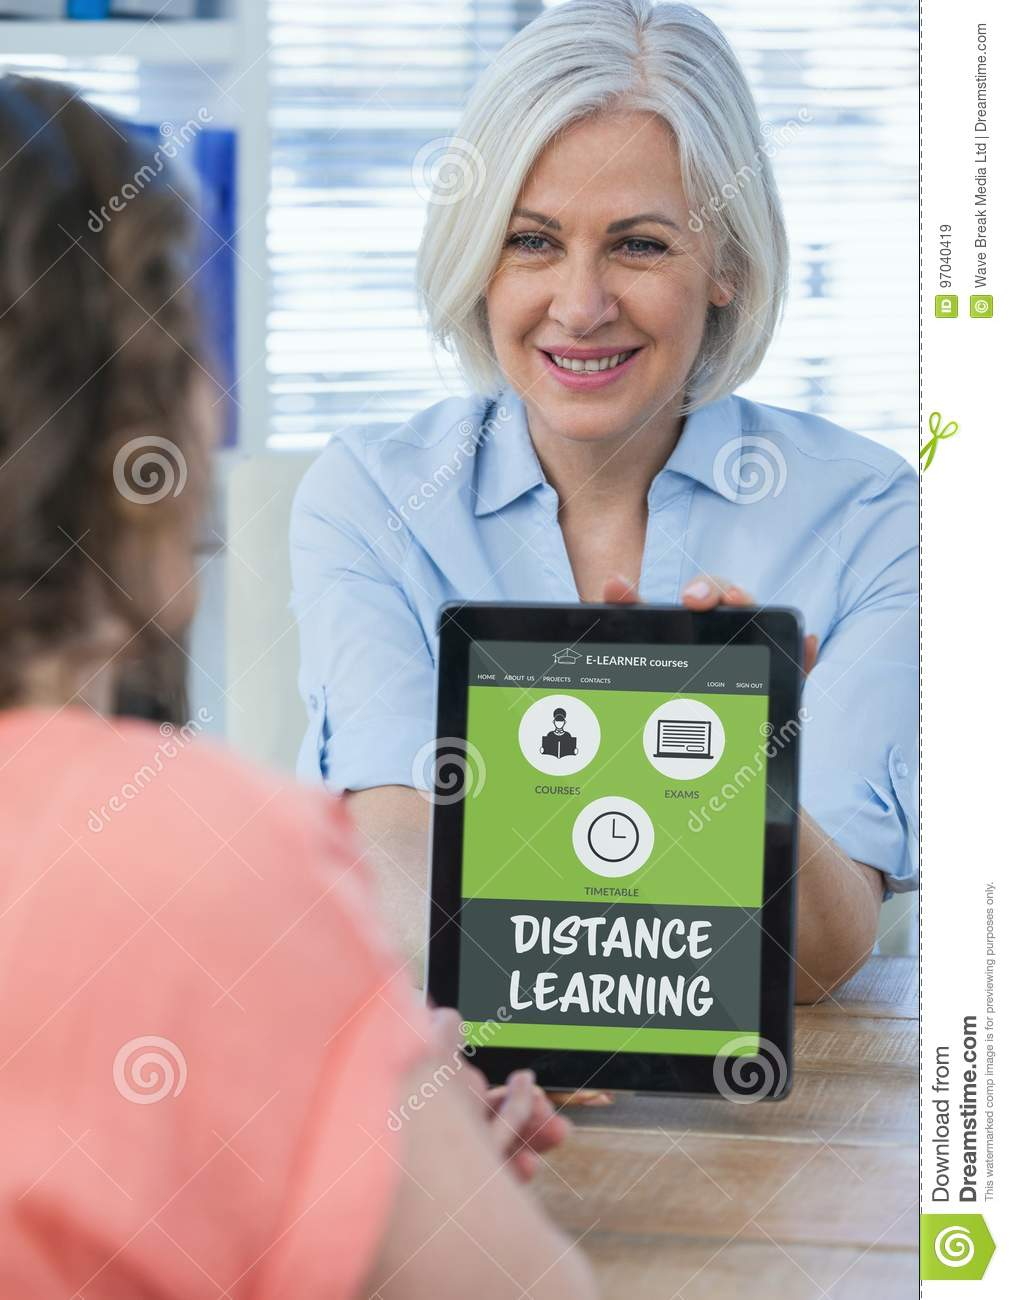 Woman holding a tablet with E-Learning information in the screen